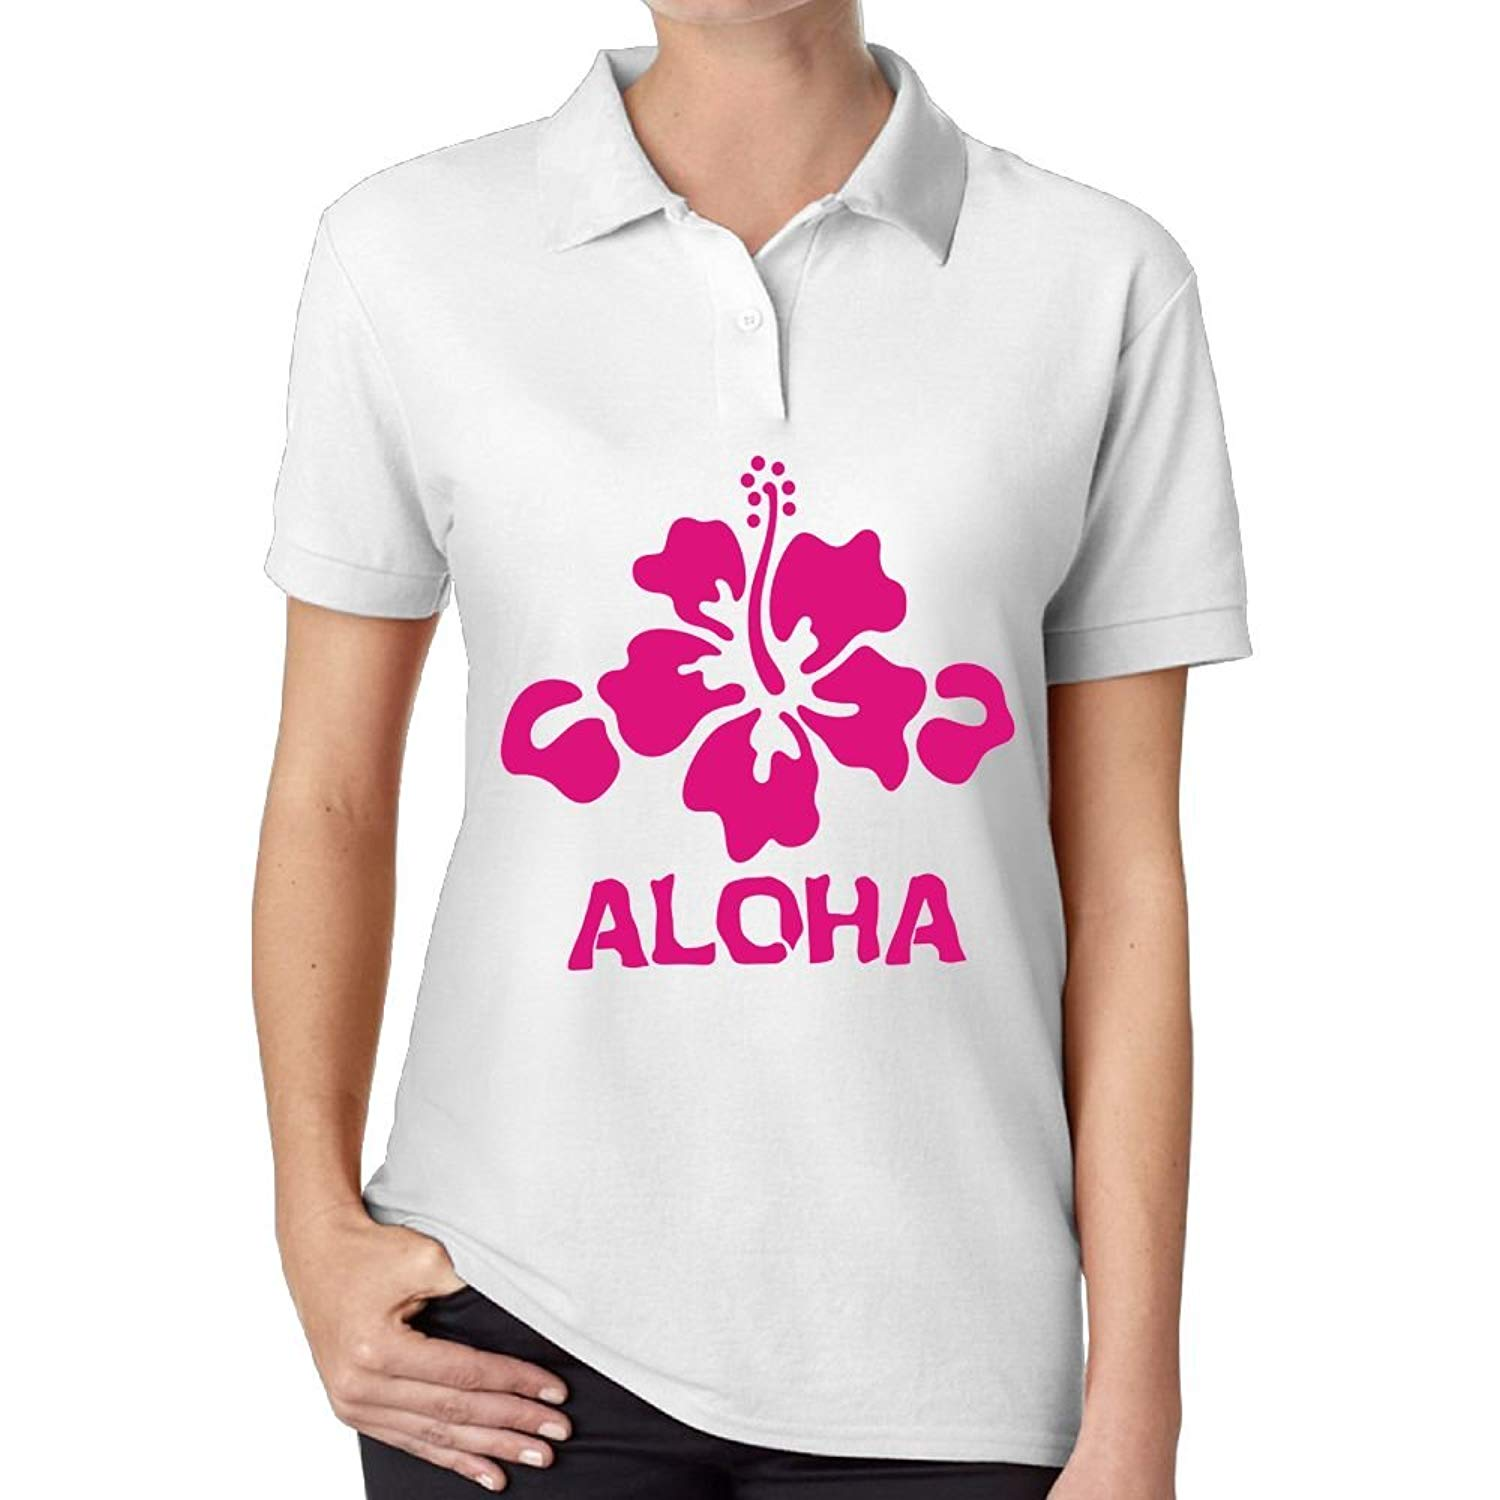 1b8528df Get Quotations · Mokjeiij Aloha Flower Hawaiian T-Shirt Men's Summer Womens  Short Sleeves Comfortable and Sturdy Shirt